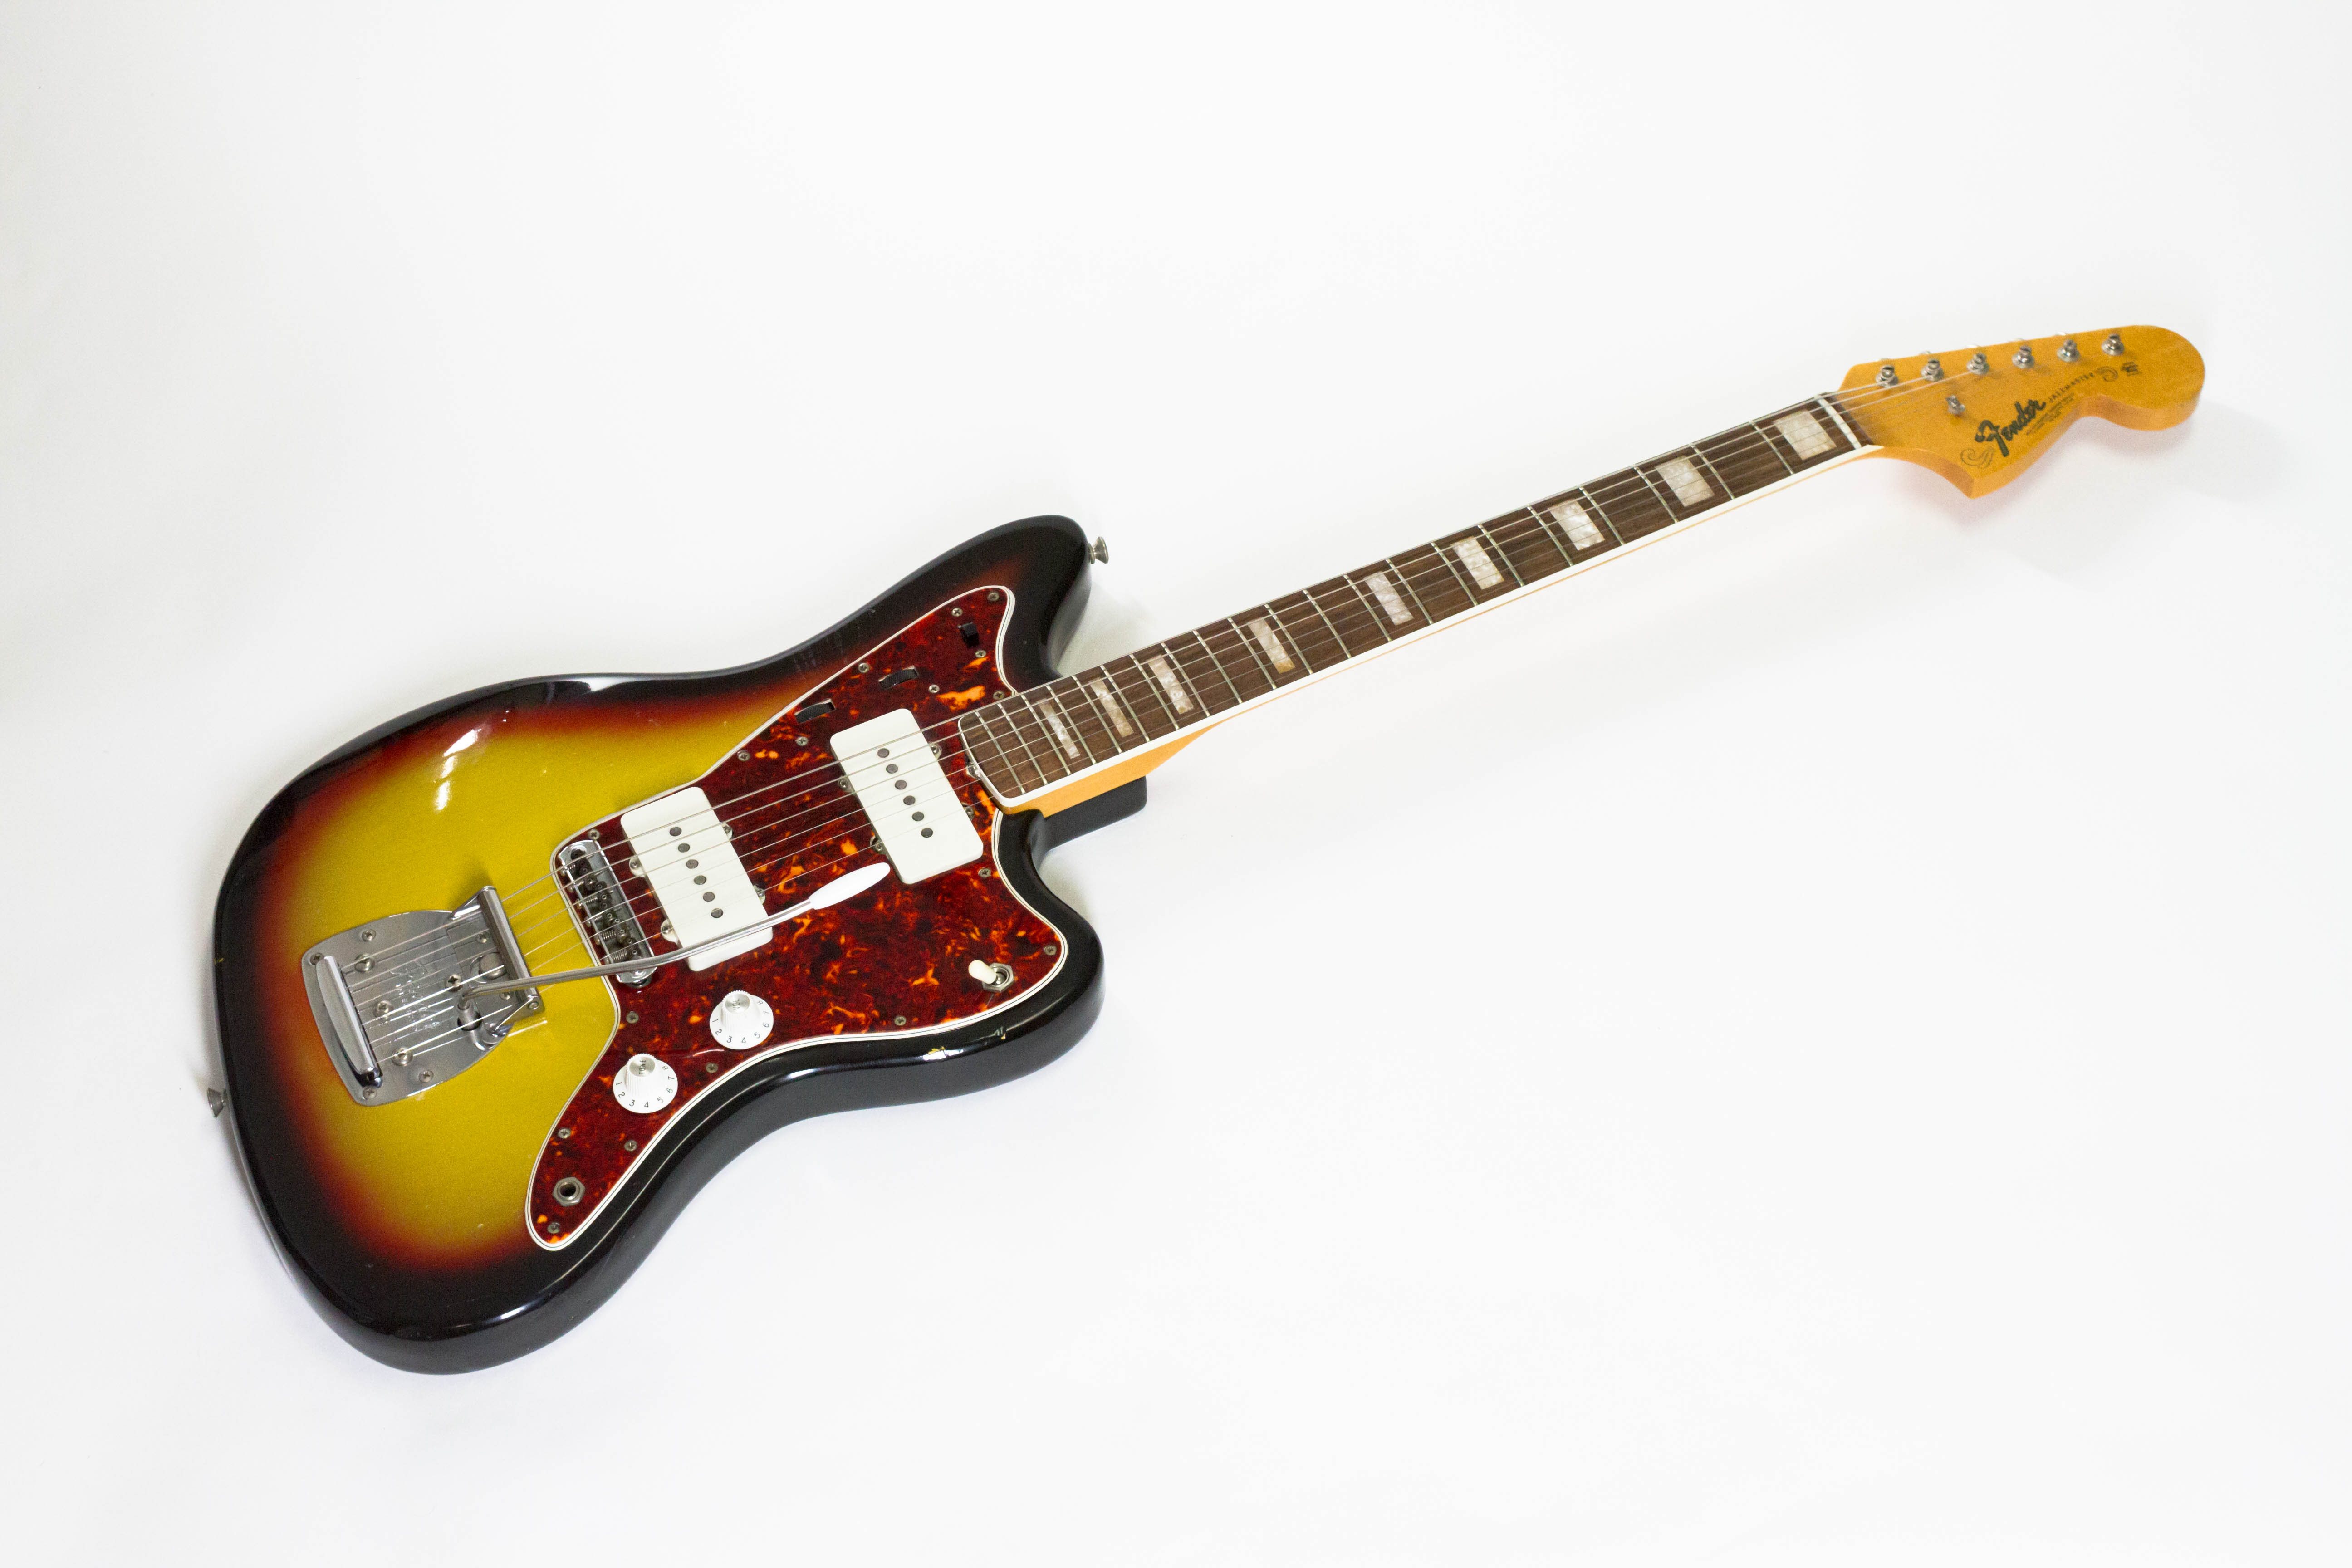 1966 fender jazzmaster south austin music new used and vintage instruments acoustic and. Black Bedroom Furniture Sets. Home Design Ideas